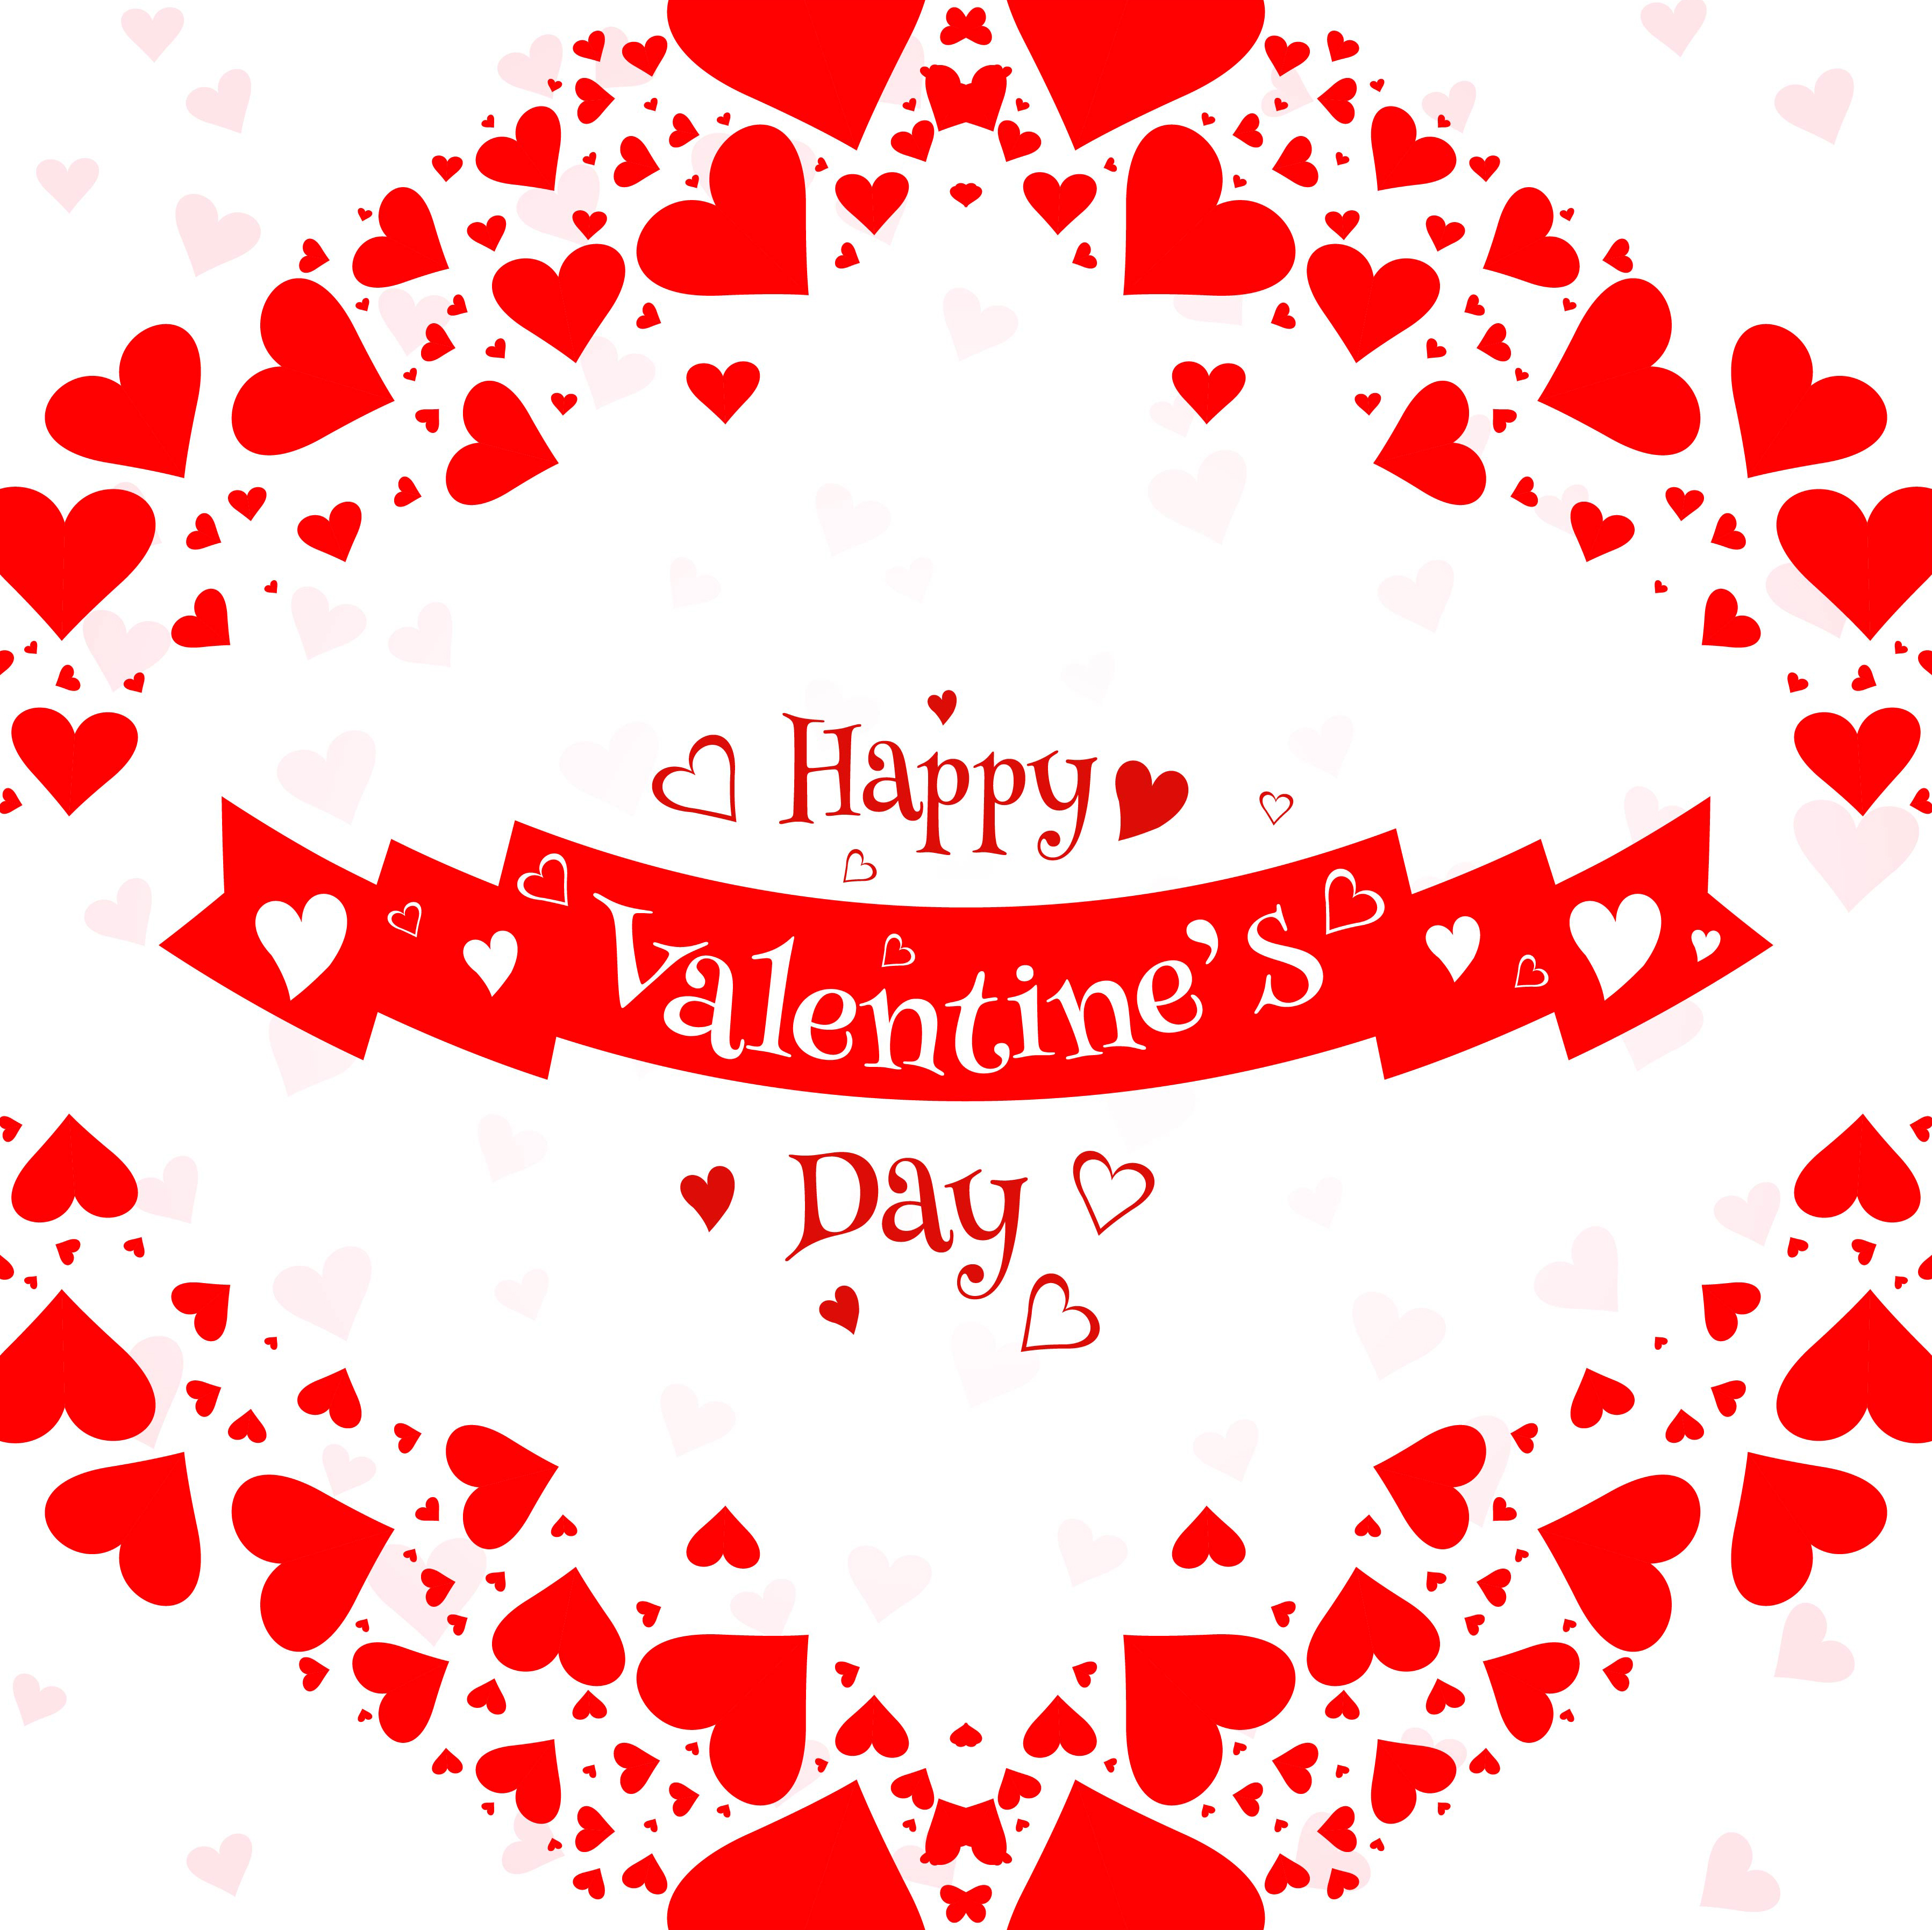 valentines day colorful hearts card background